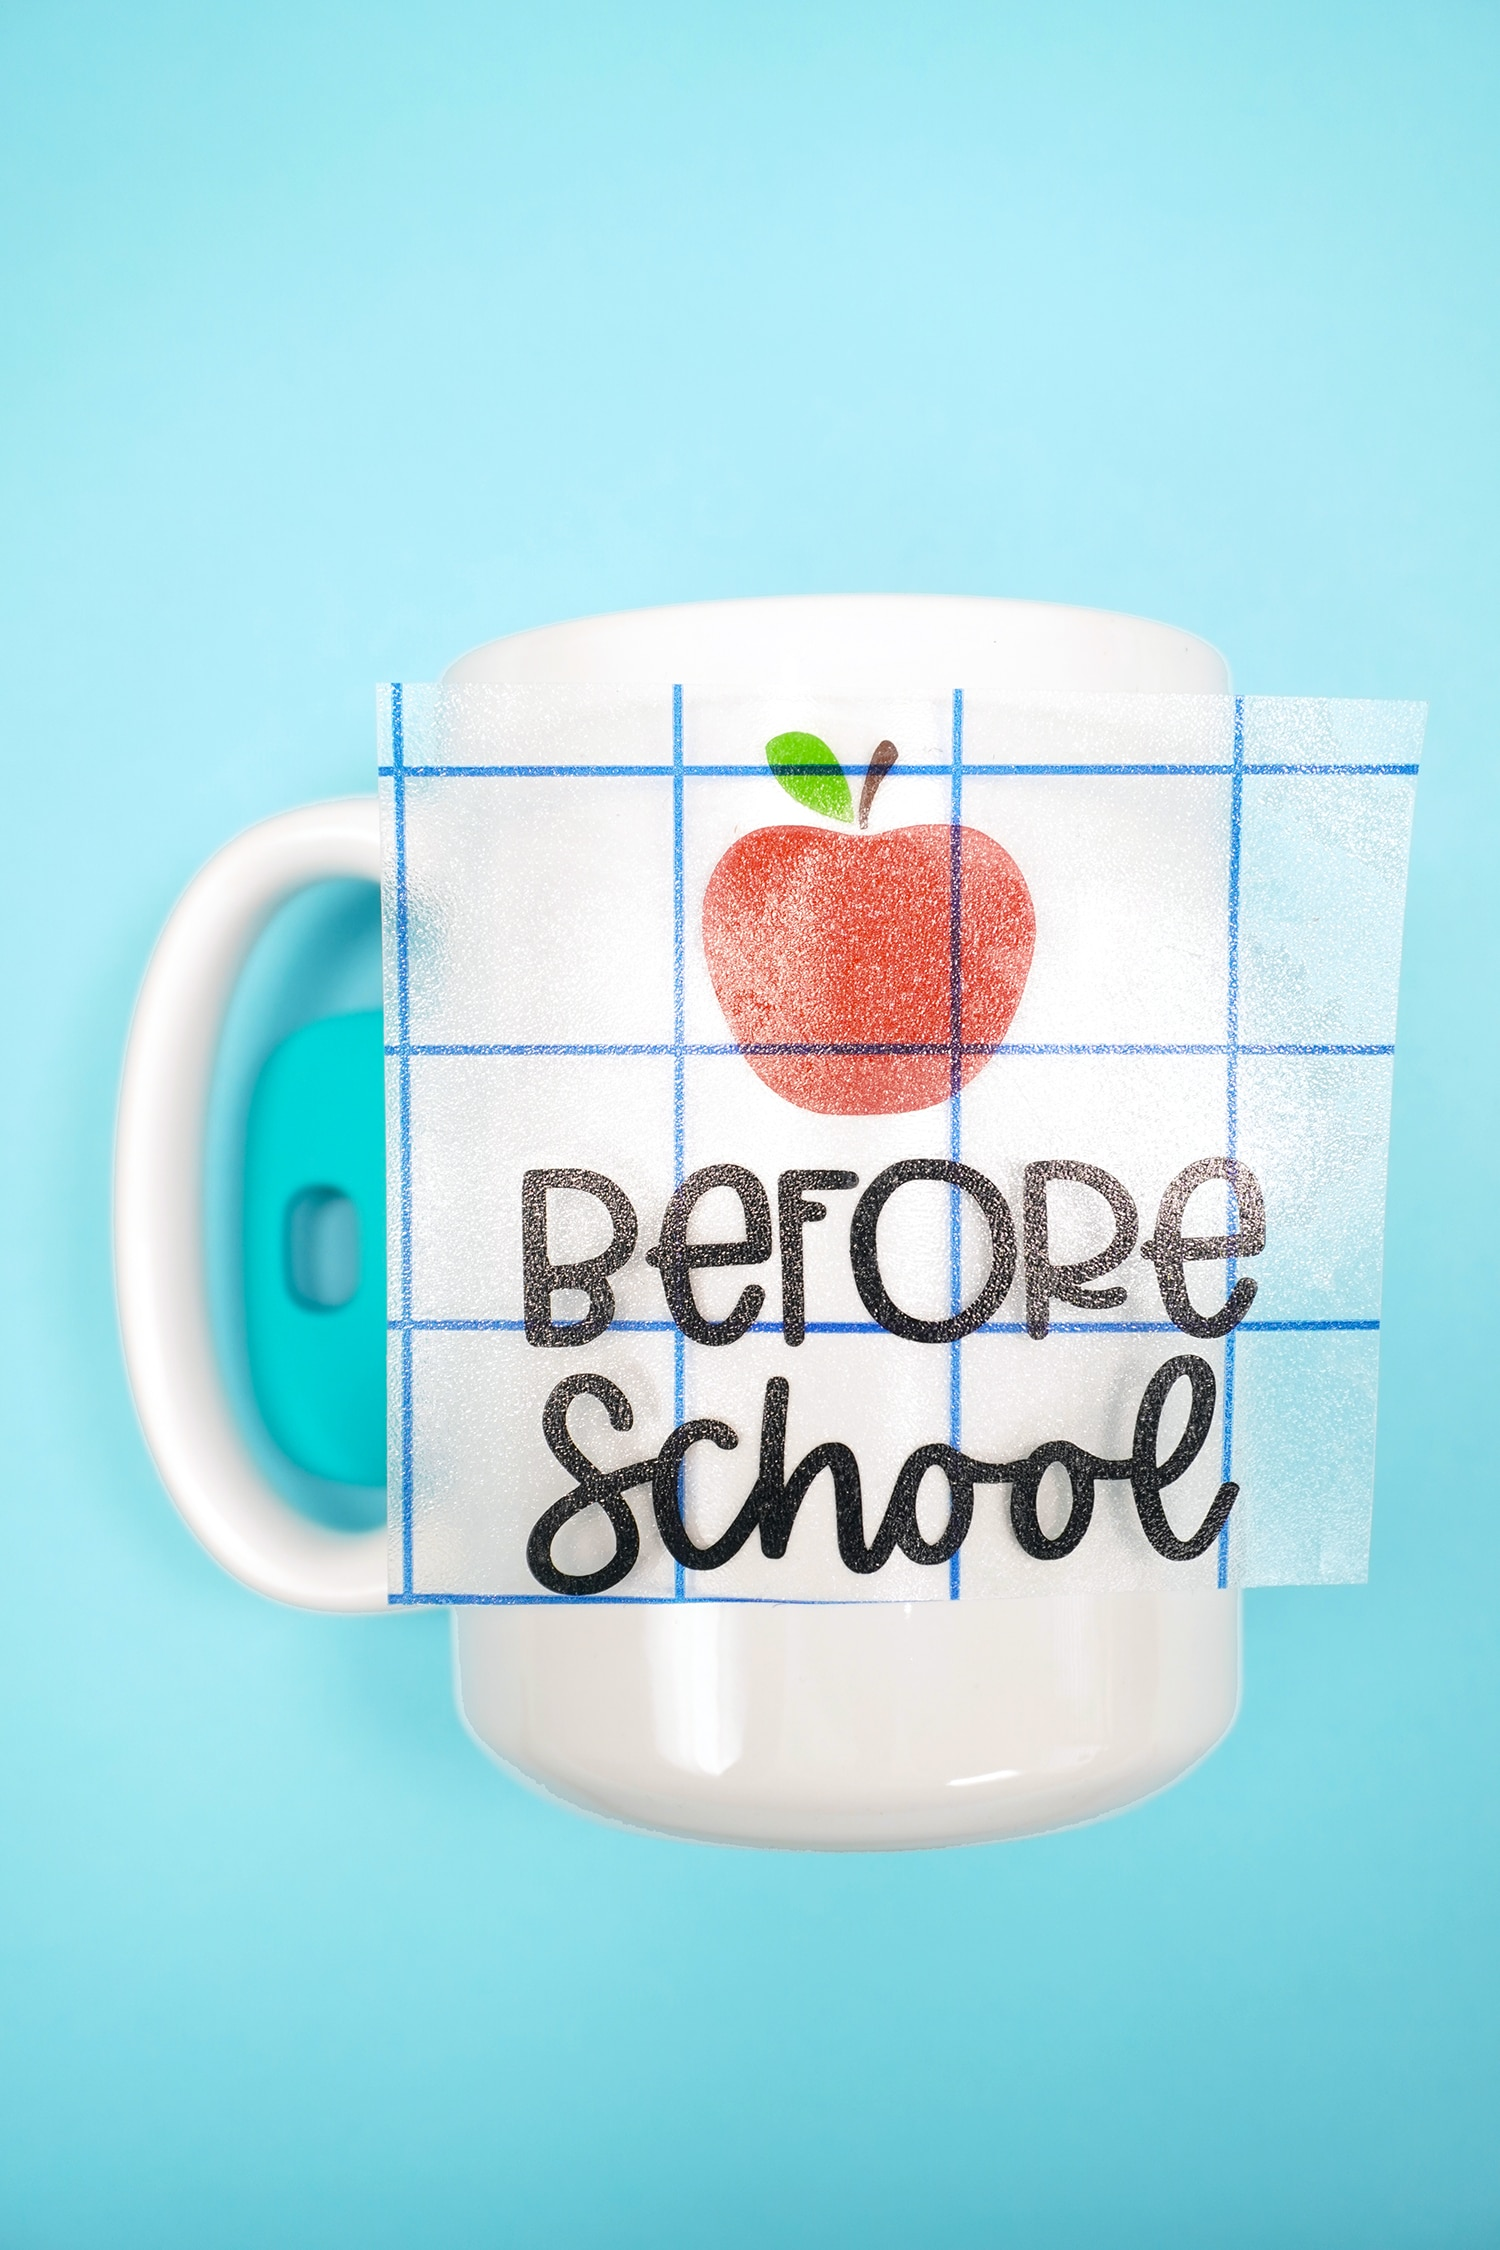 """Before School"" and apple vinyl designs on transfer tape in the process of being applied to a white mug"